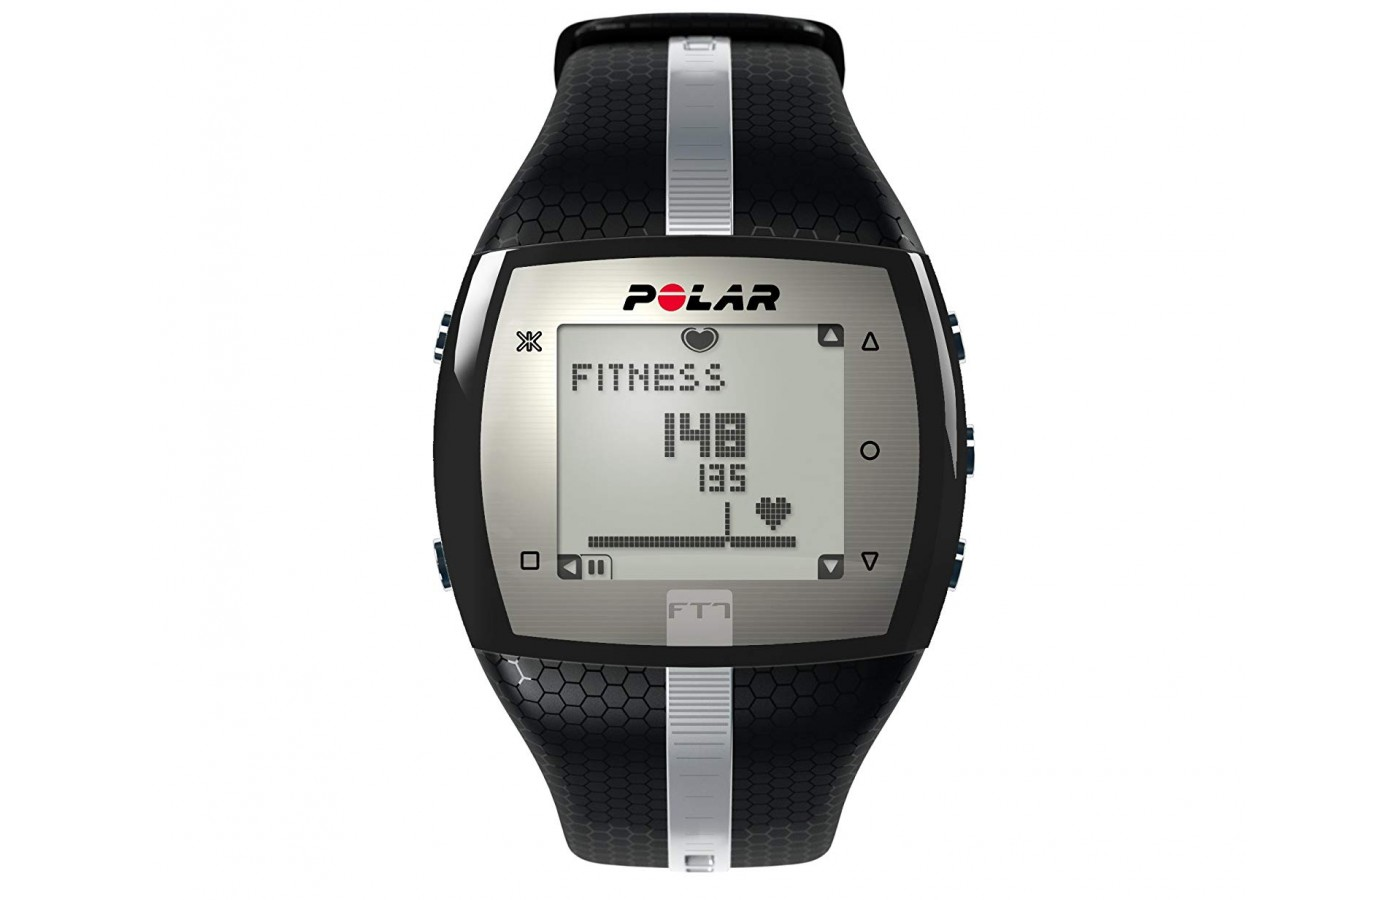 The Polar FT7 stores training files, gives weekly summaries and records up to 99 records all while remaining easy to use.